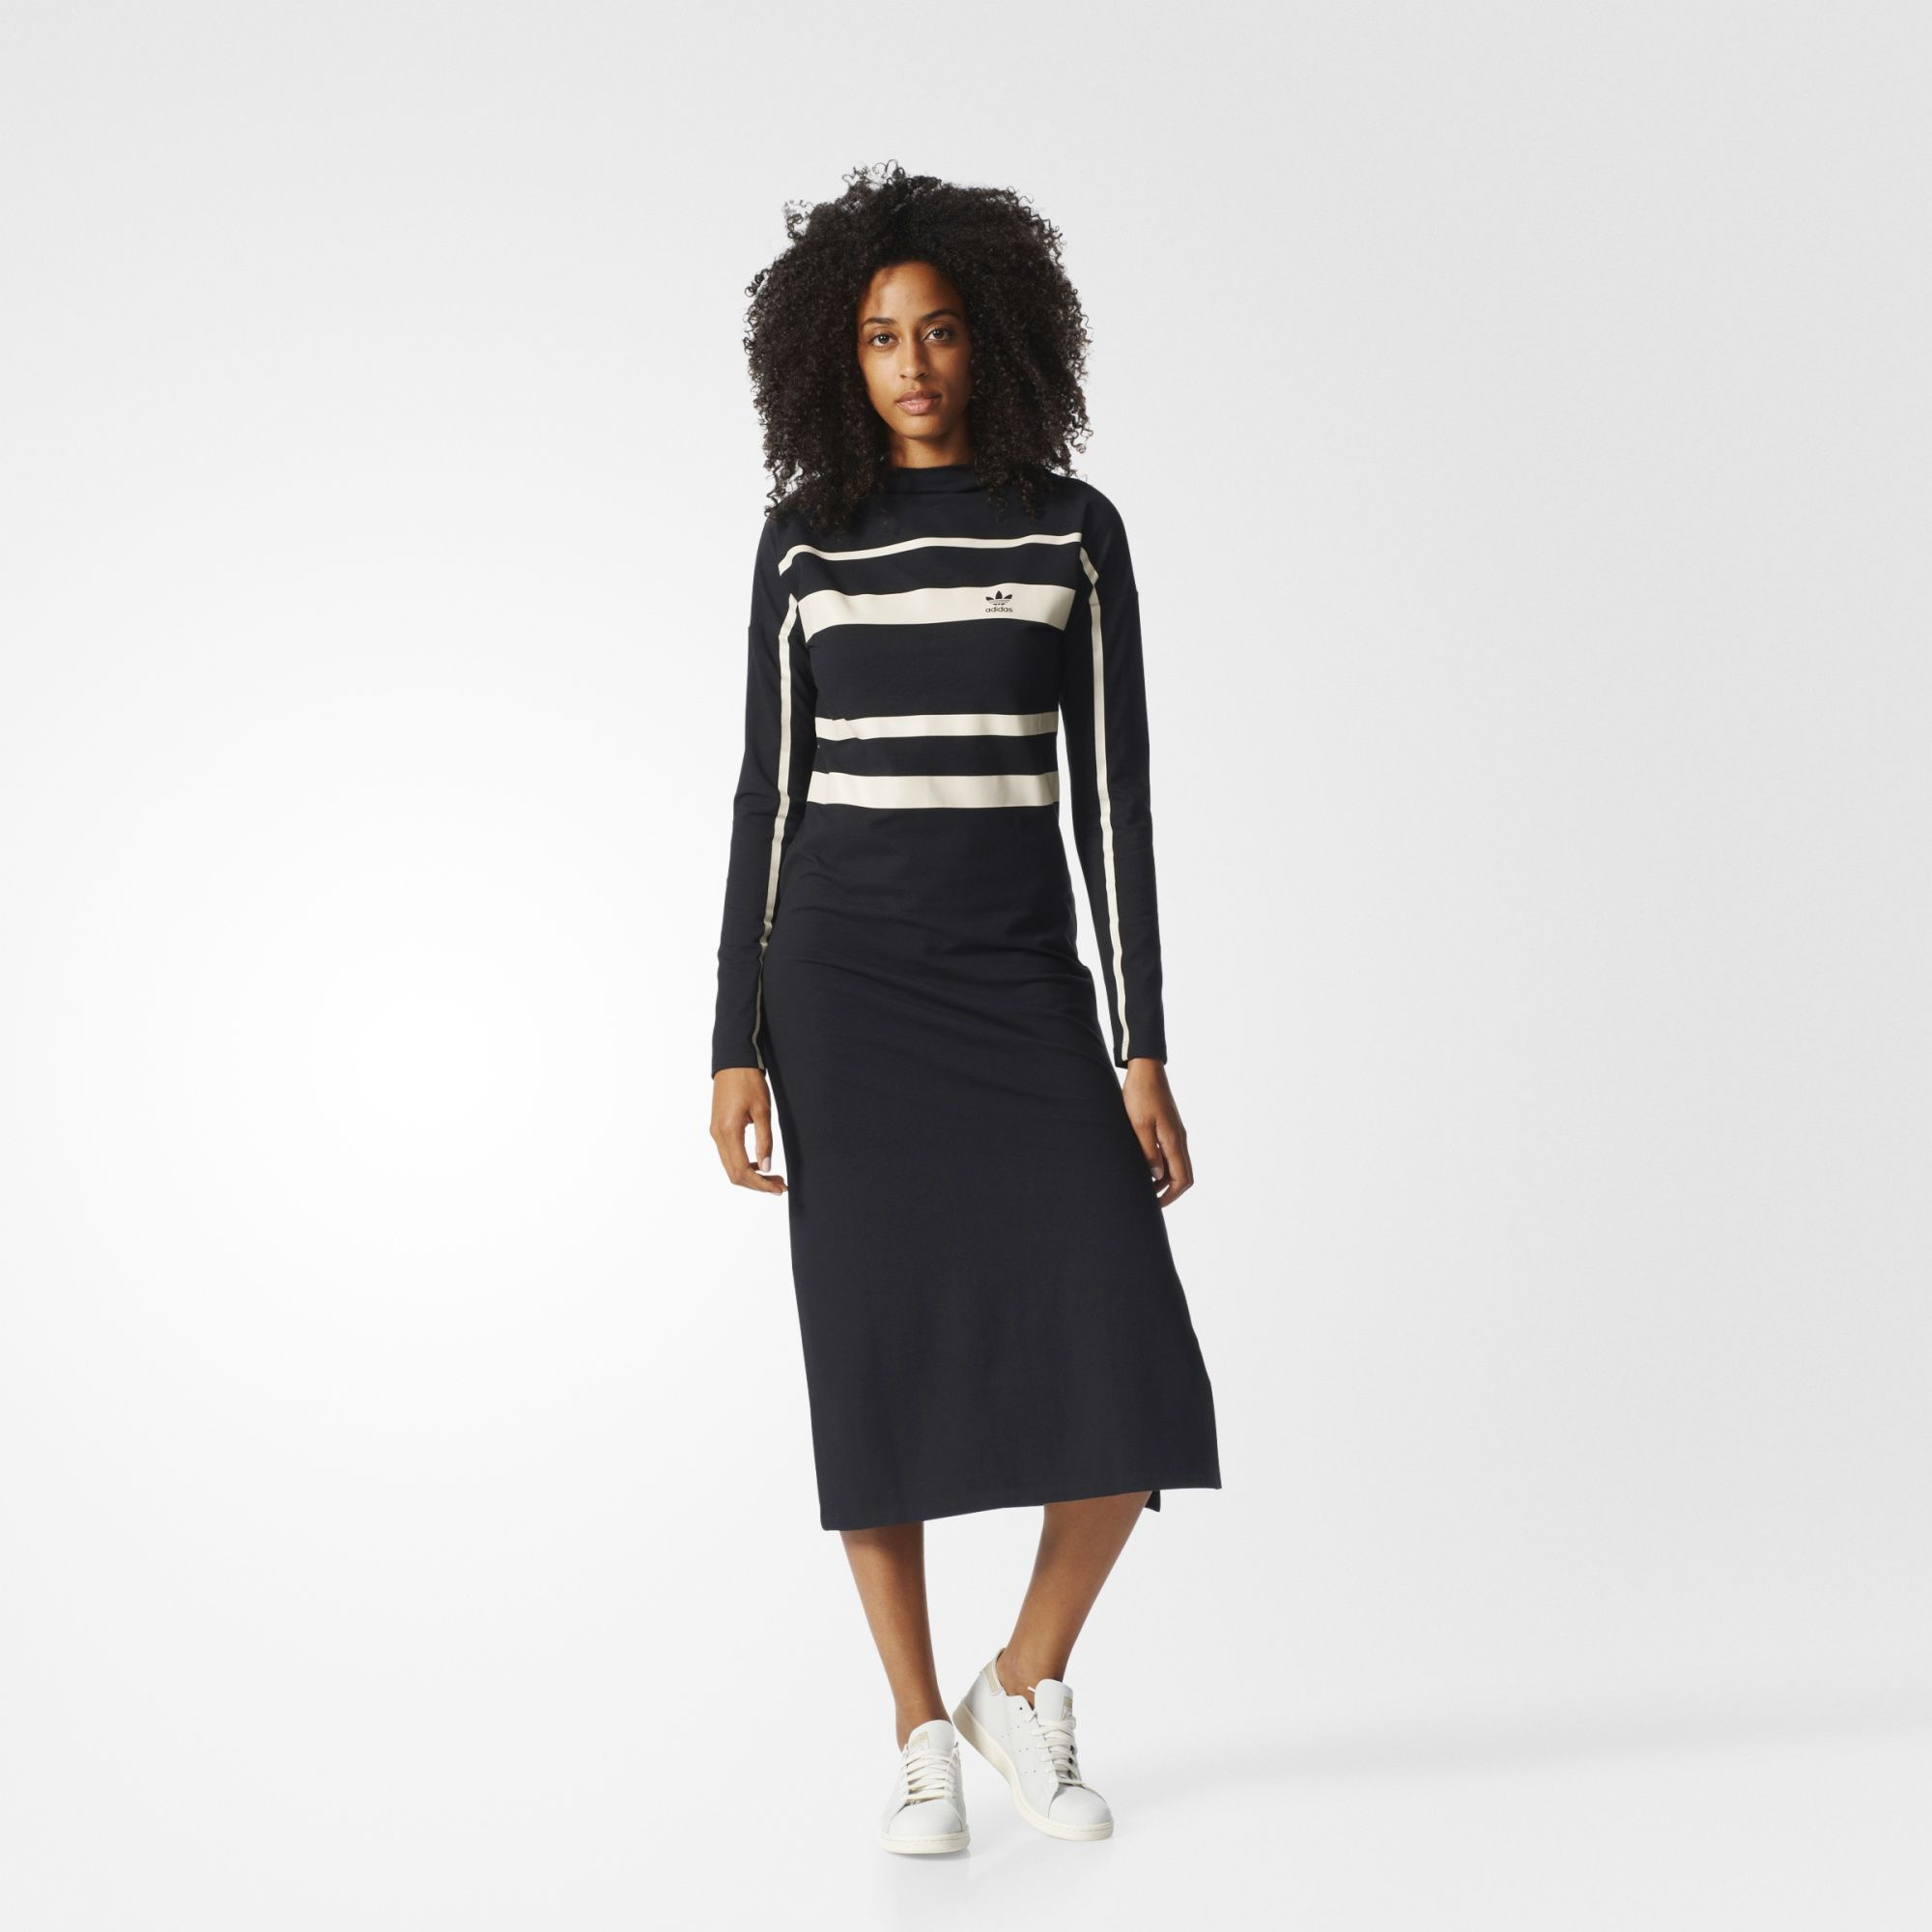 adidas - Women's Long Dress | Lange jurken, Mode, Sport mode